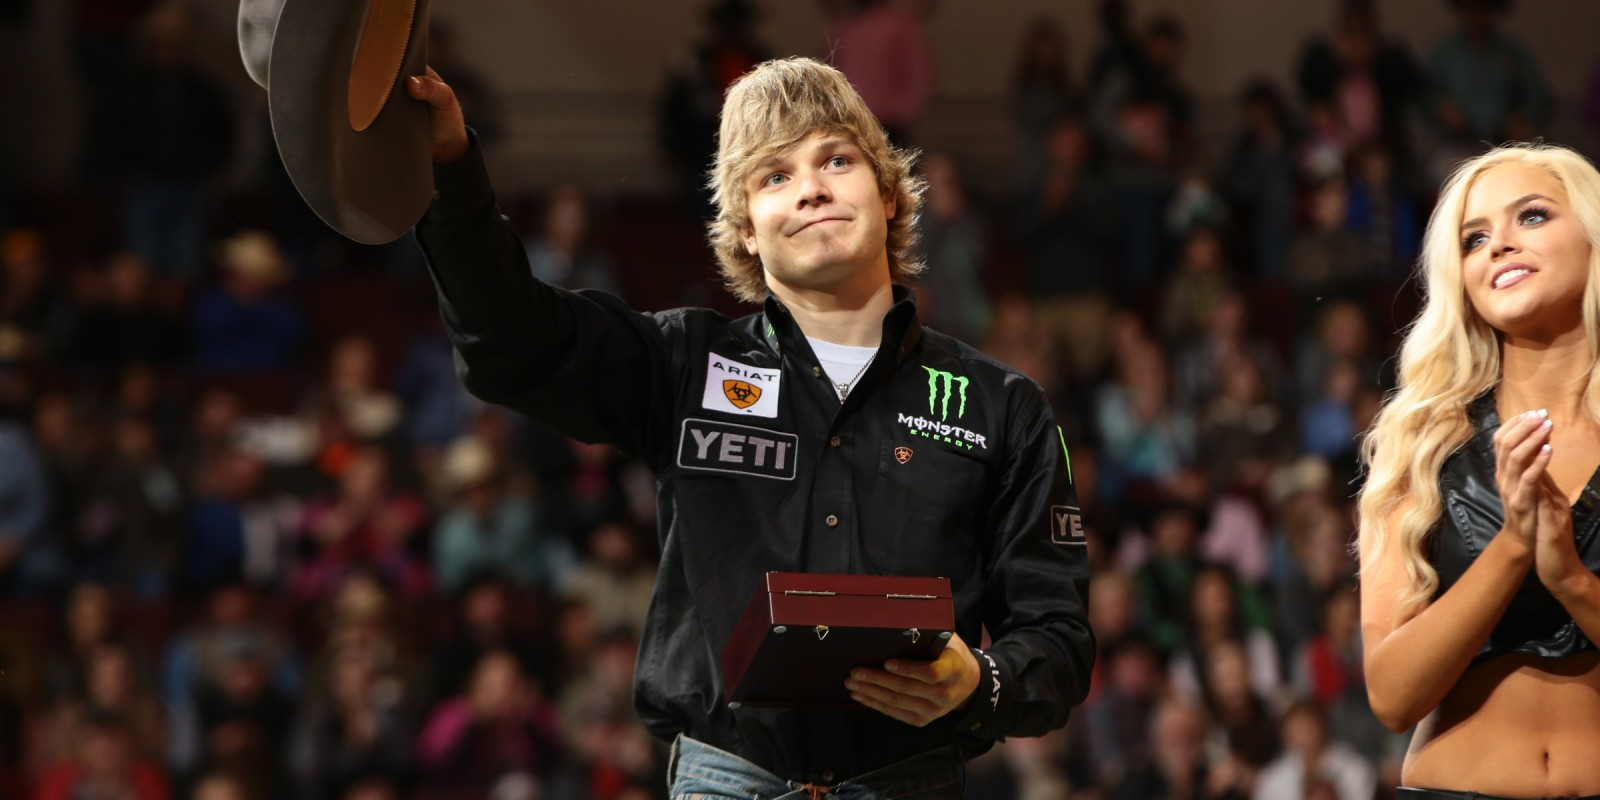 Derek Kolbaba wins the Little Rock Built Ford Tough series PBR